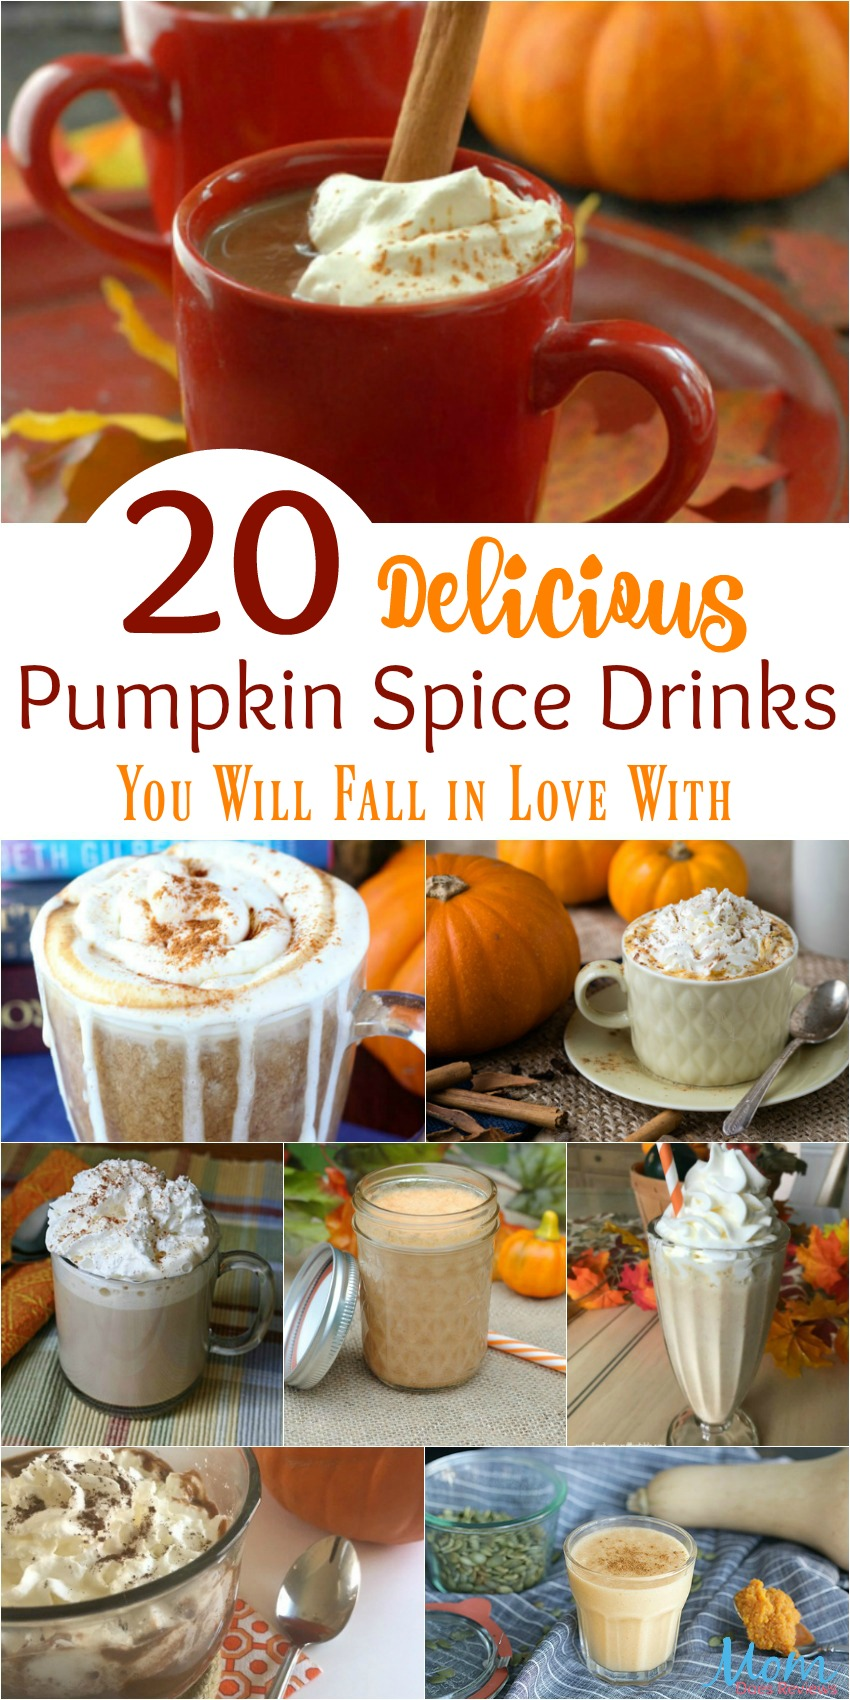 20 Delicious Pumpkin Spice Drinks You Will Fall in Love With